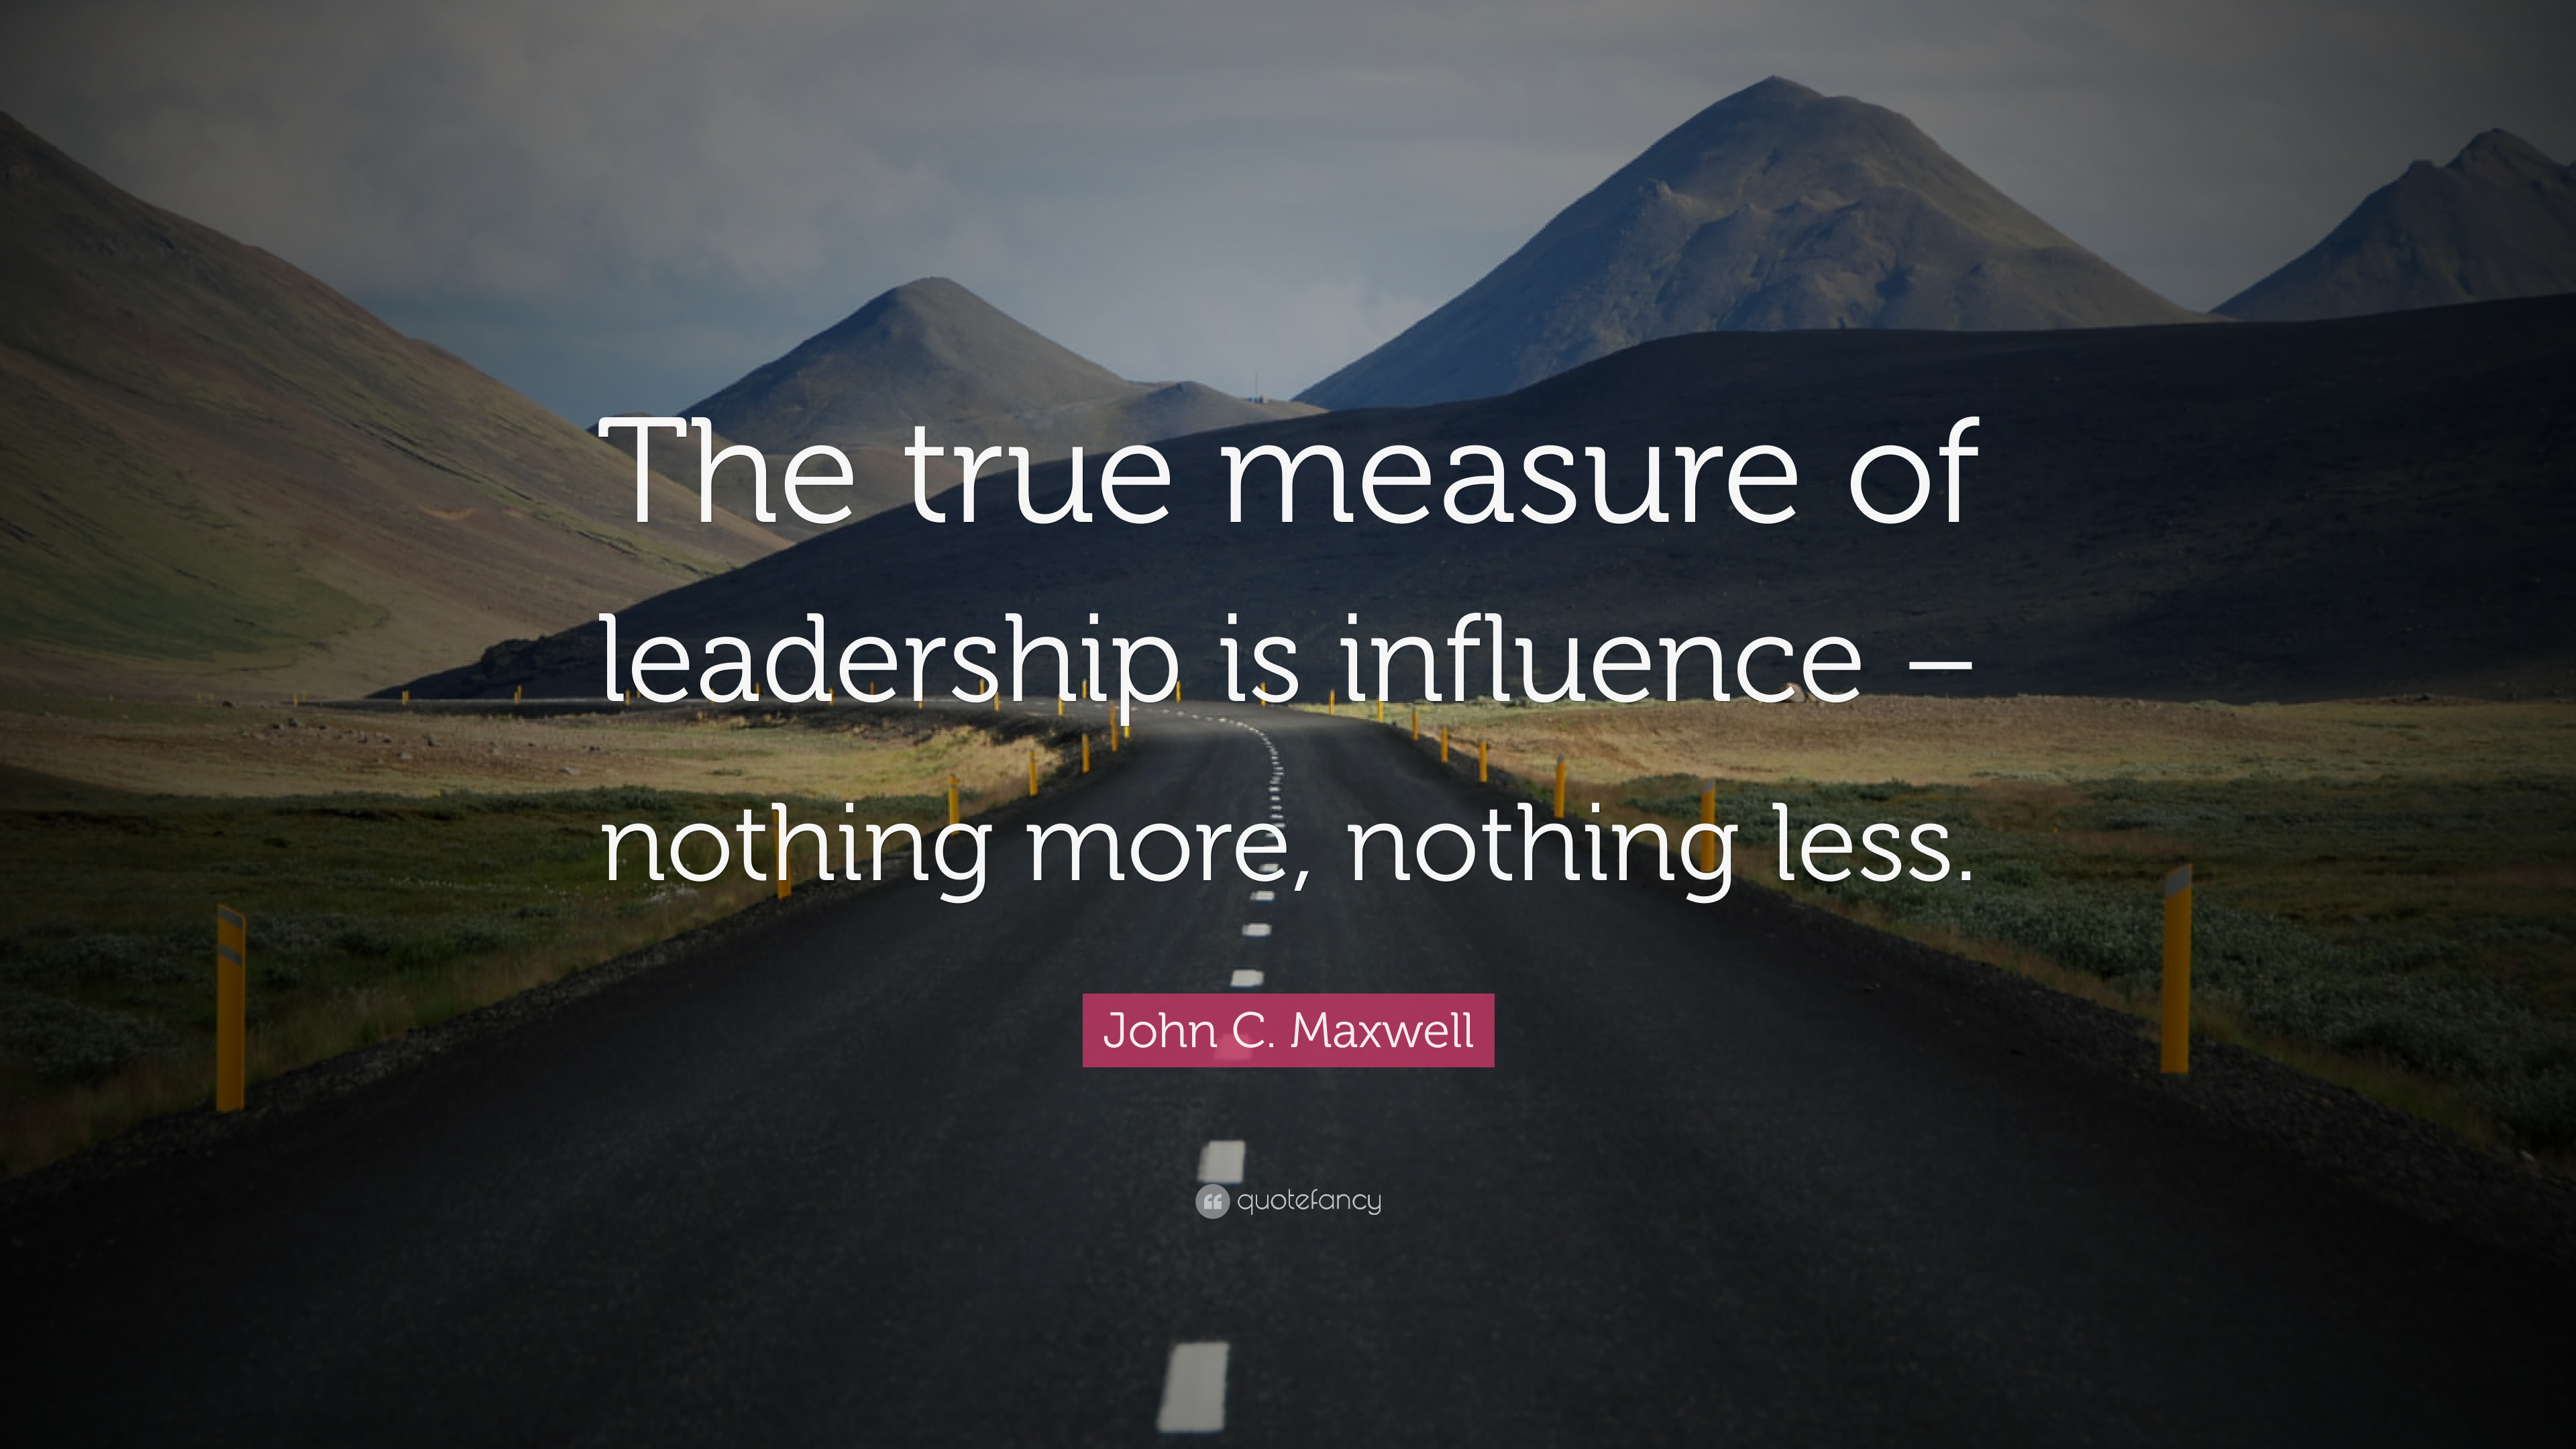 john c  maxwell quote   u201cthe true measure of leadership is